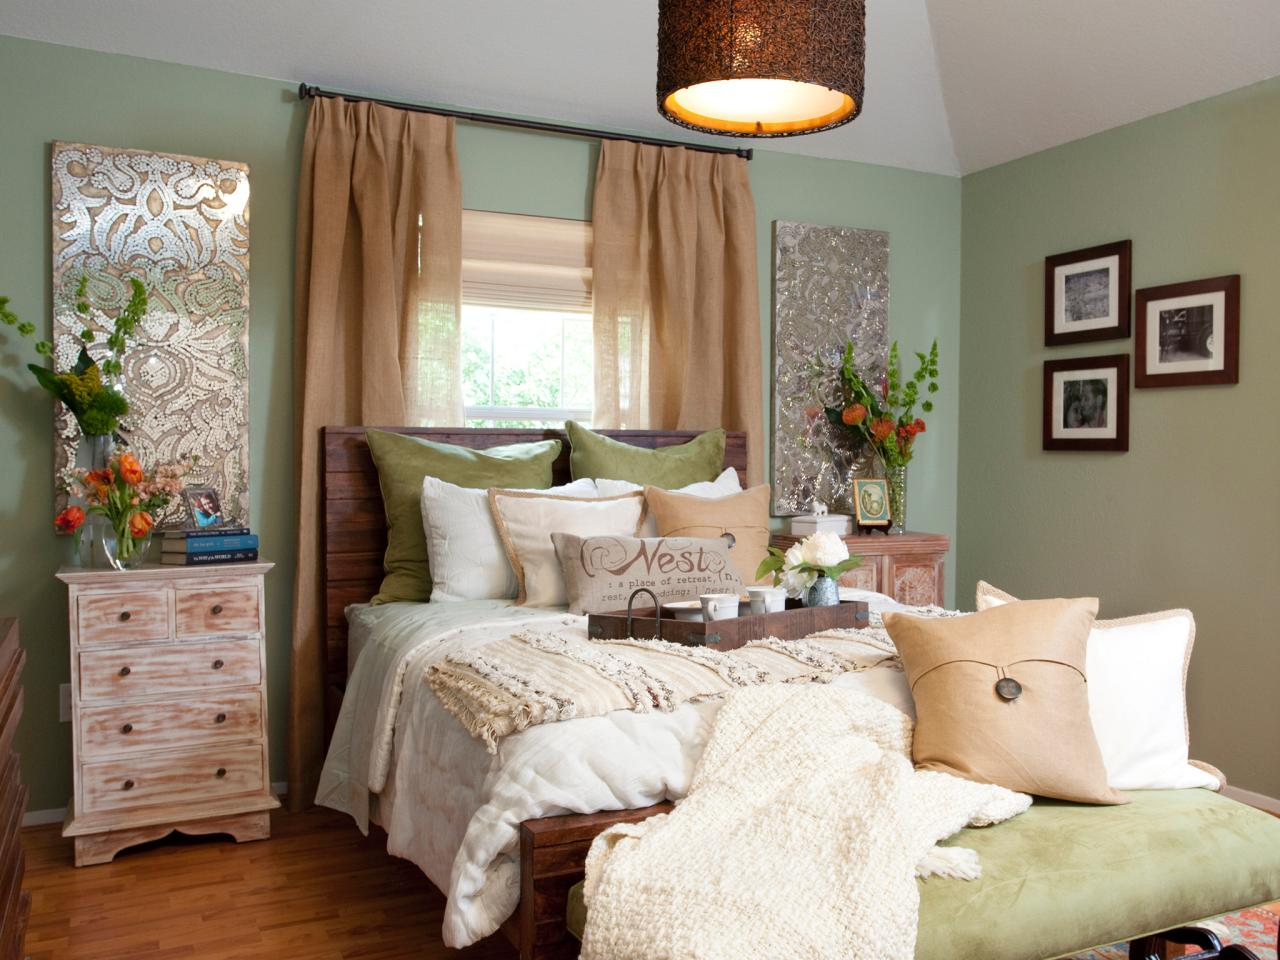 small bedroom color schemes pictures options amp ideas hgtv small bedroom color schemes pictures options amp ideas hgtv 476